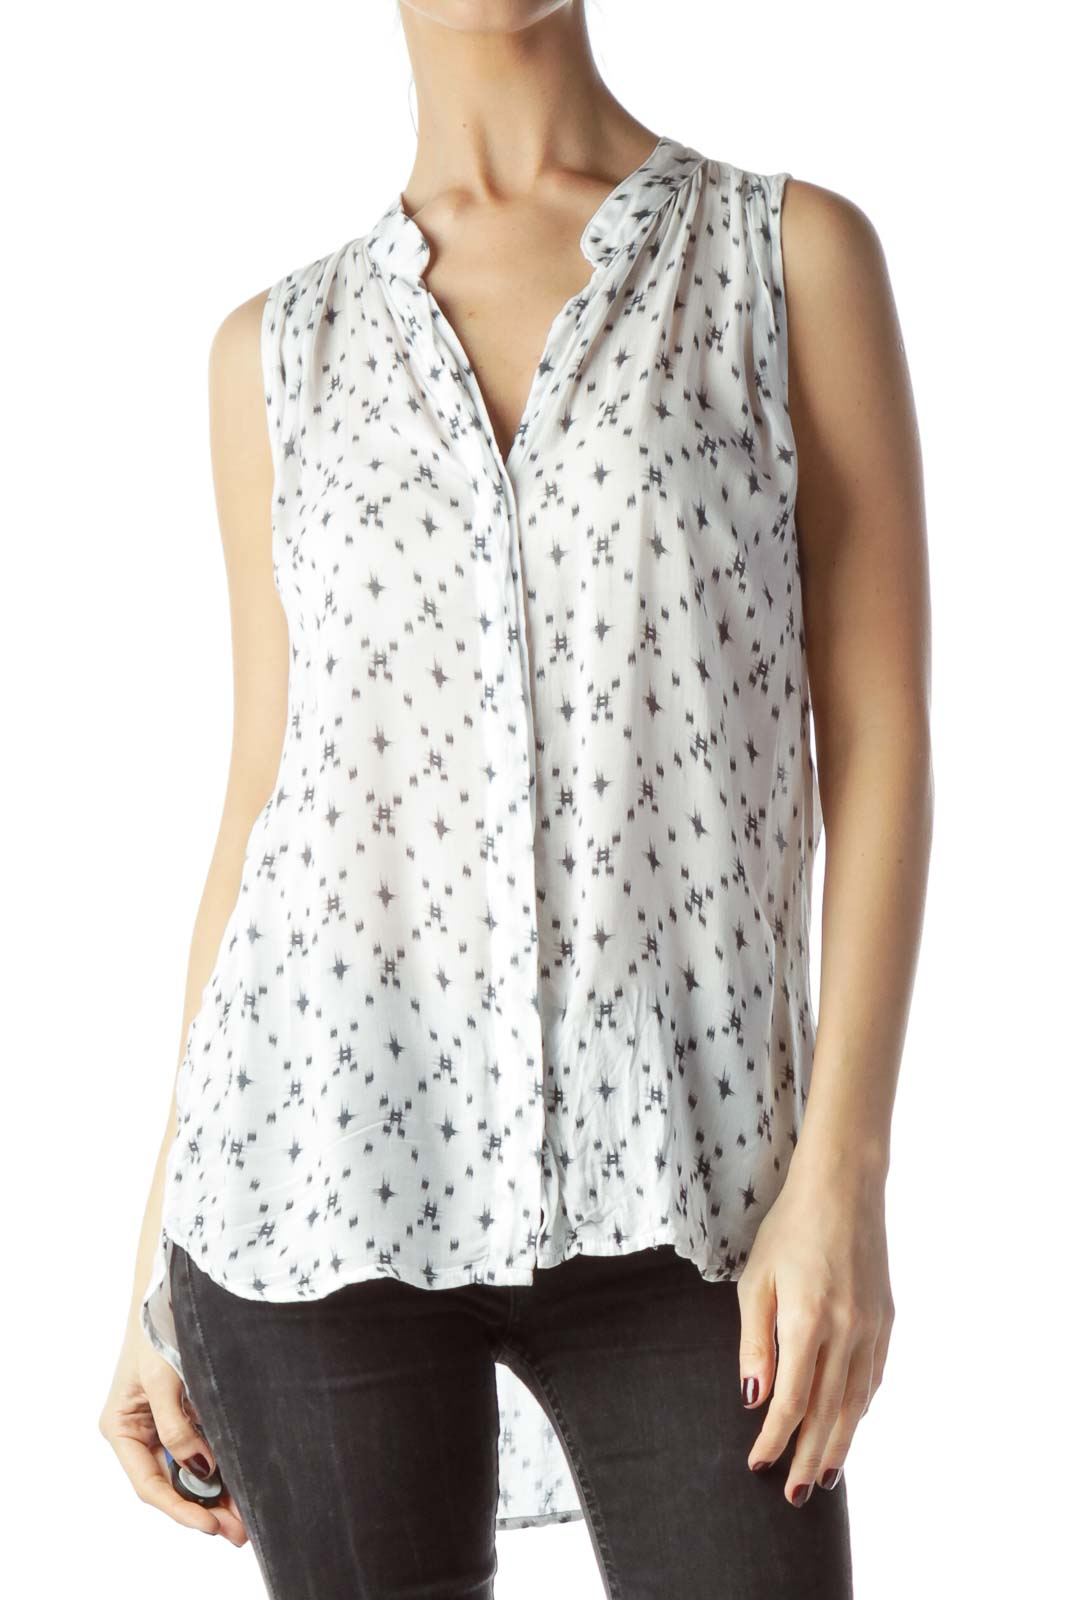 White Gray Printed Light Sleeveless Blouse Front